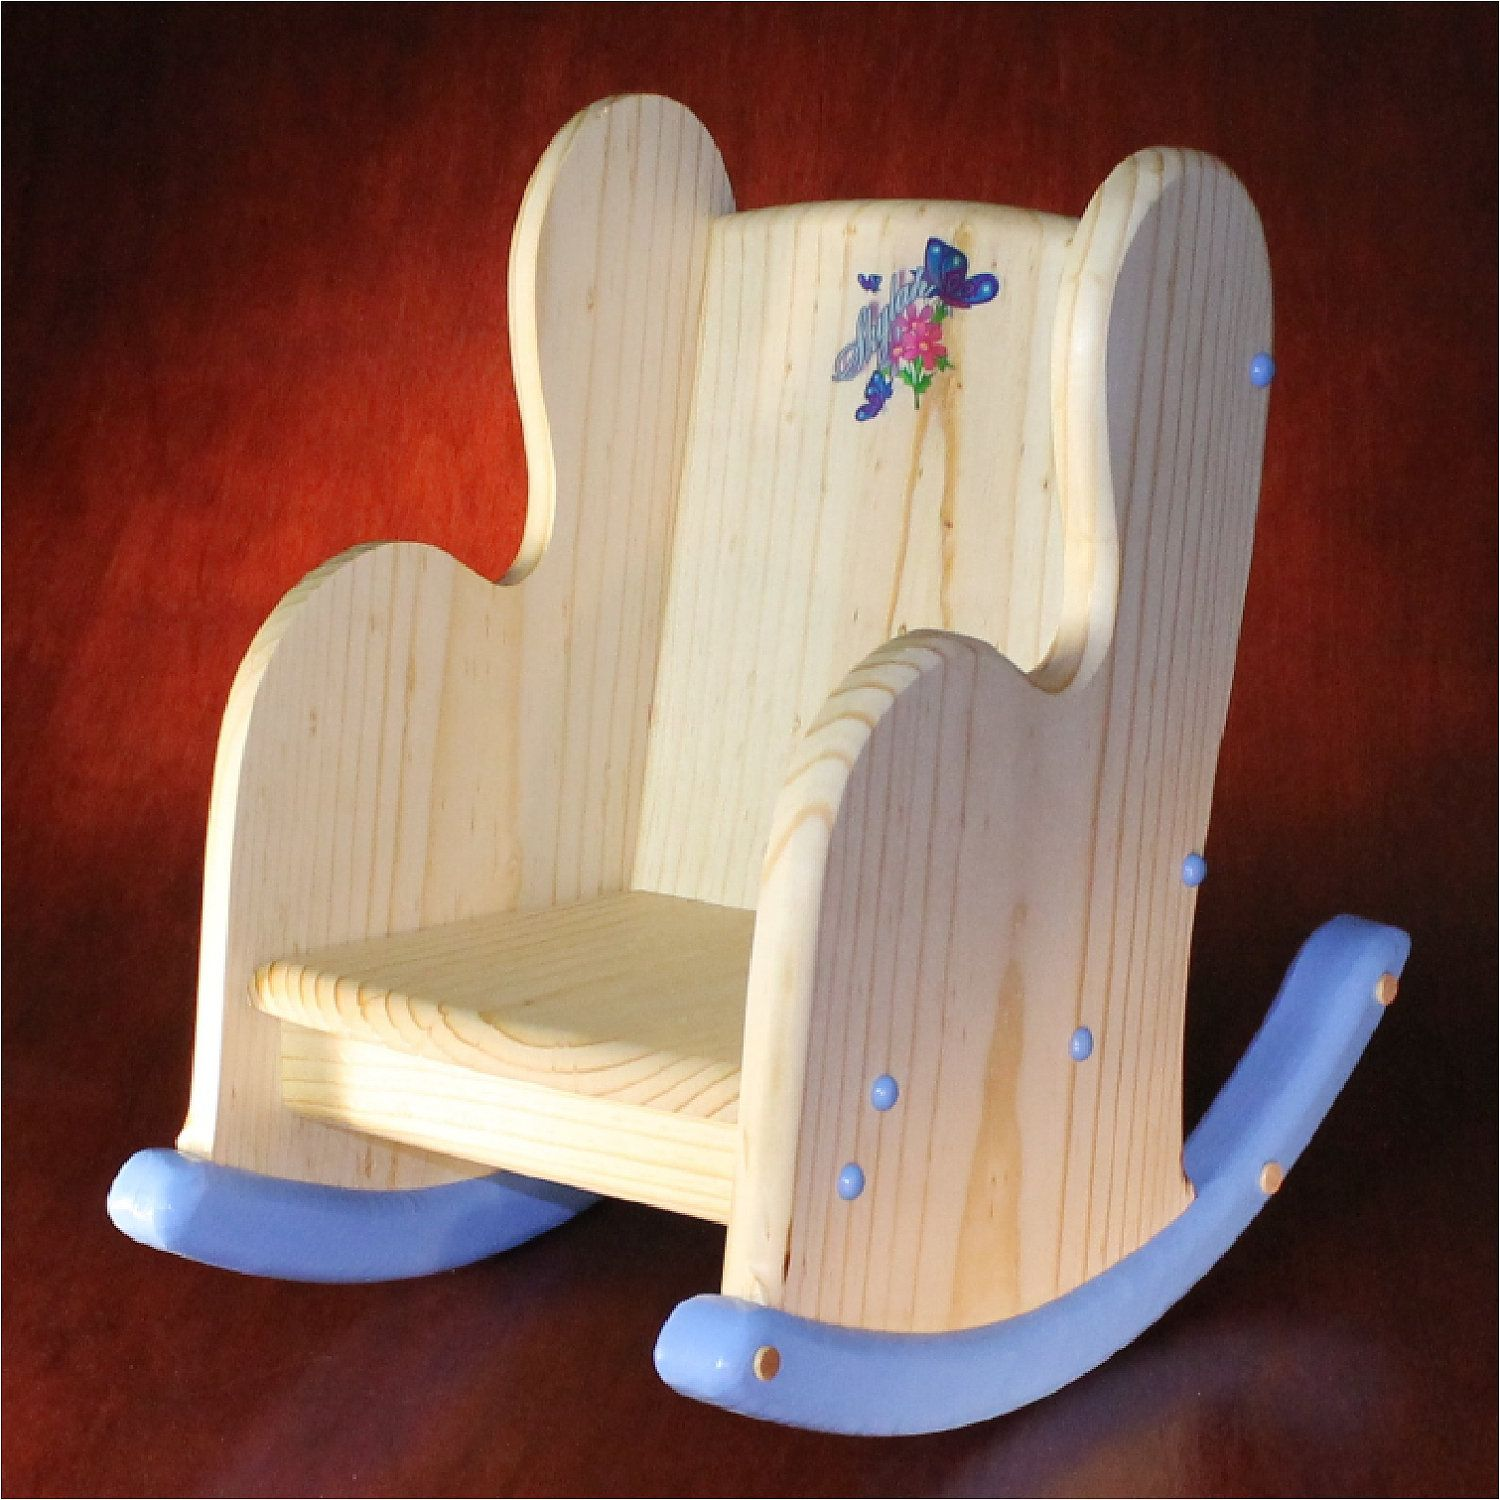 personalized rocking chair for toddlers office chairs without arms uk child 39s 43wooden 43rocking 43chair 43 43personalized 43by